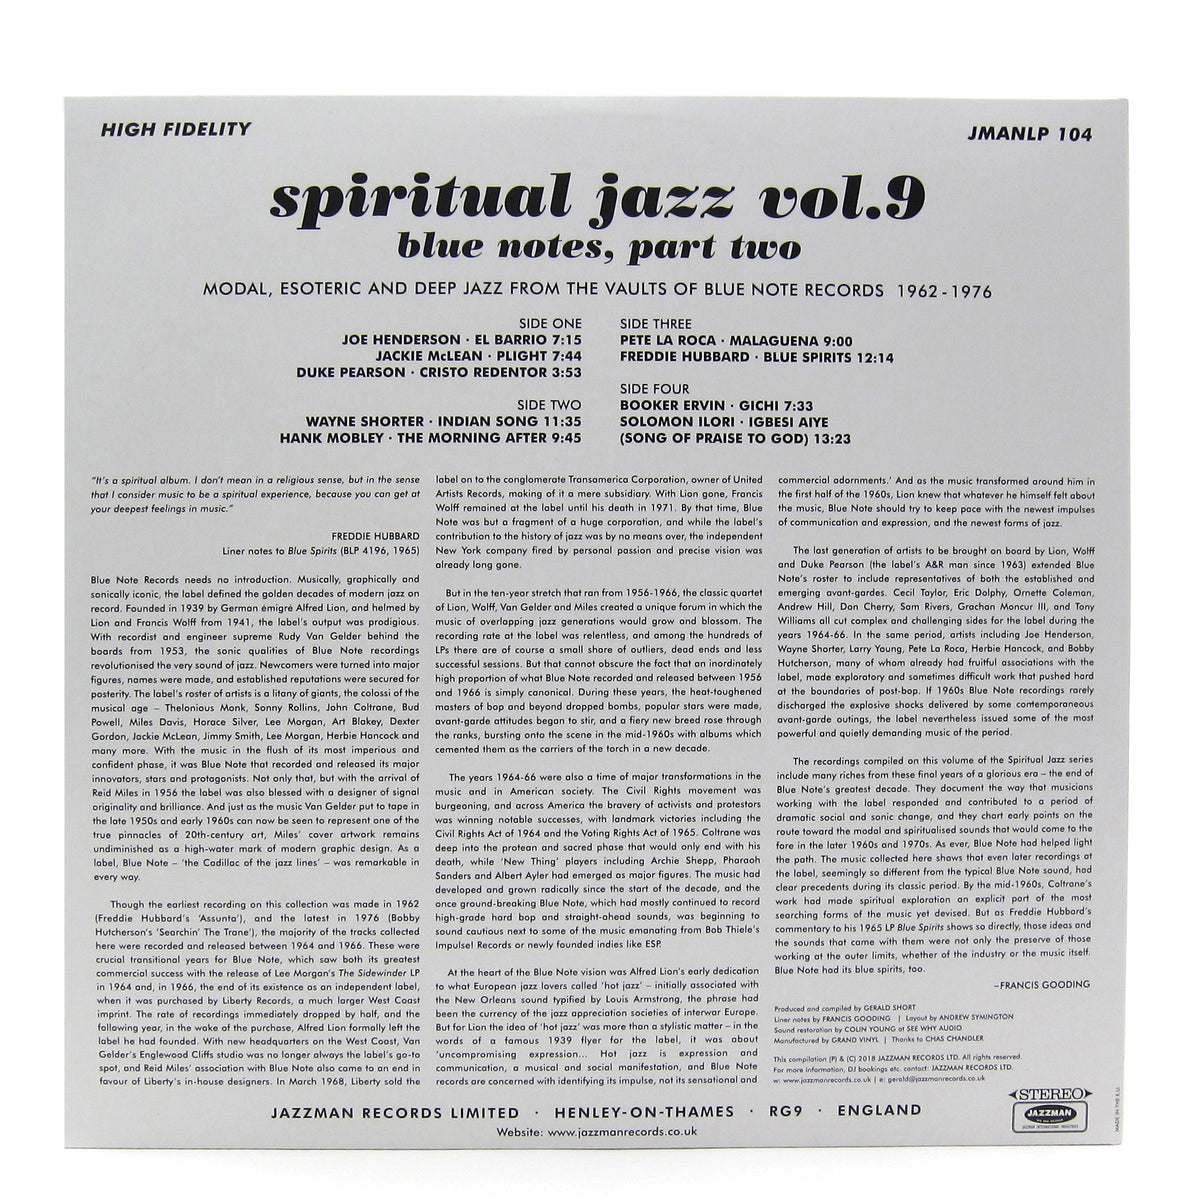 Jazzman: Spiritual Jazz 9 - Blue Notes Part Two Vinyl 2LP